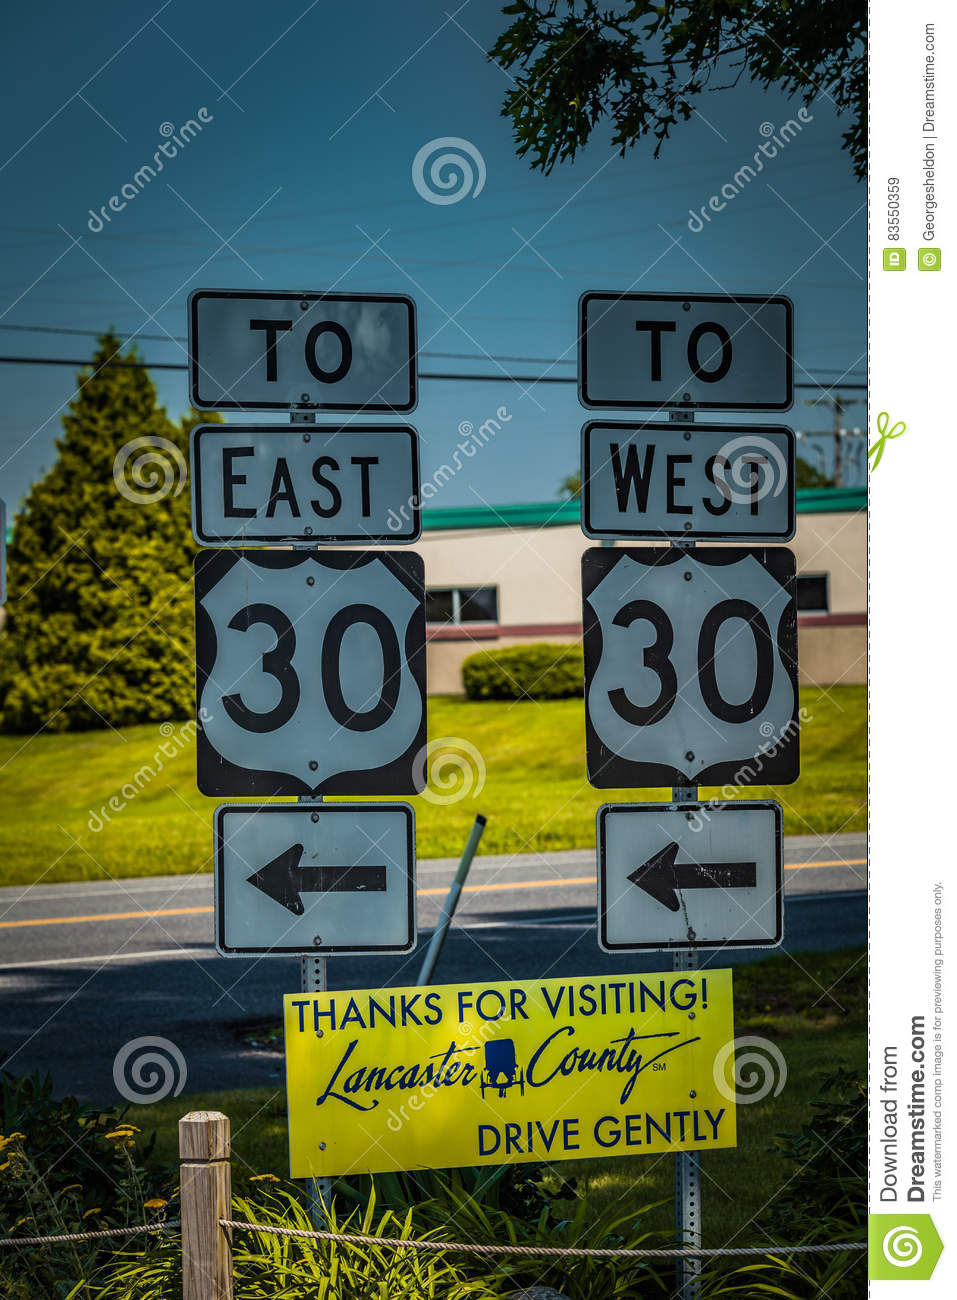 route 30 signs in lancaster county editorial stock image - image of